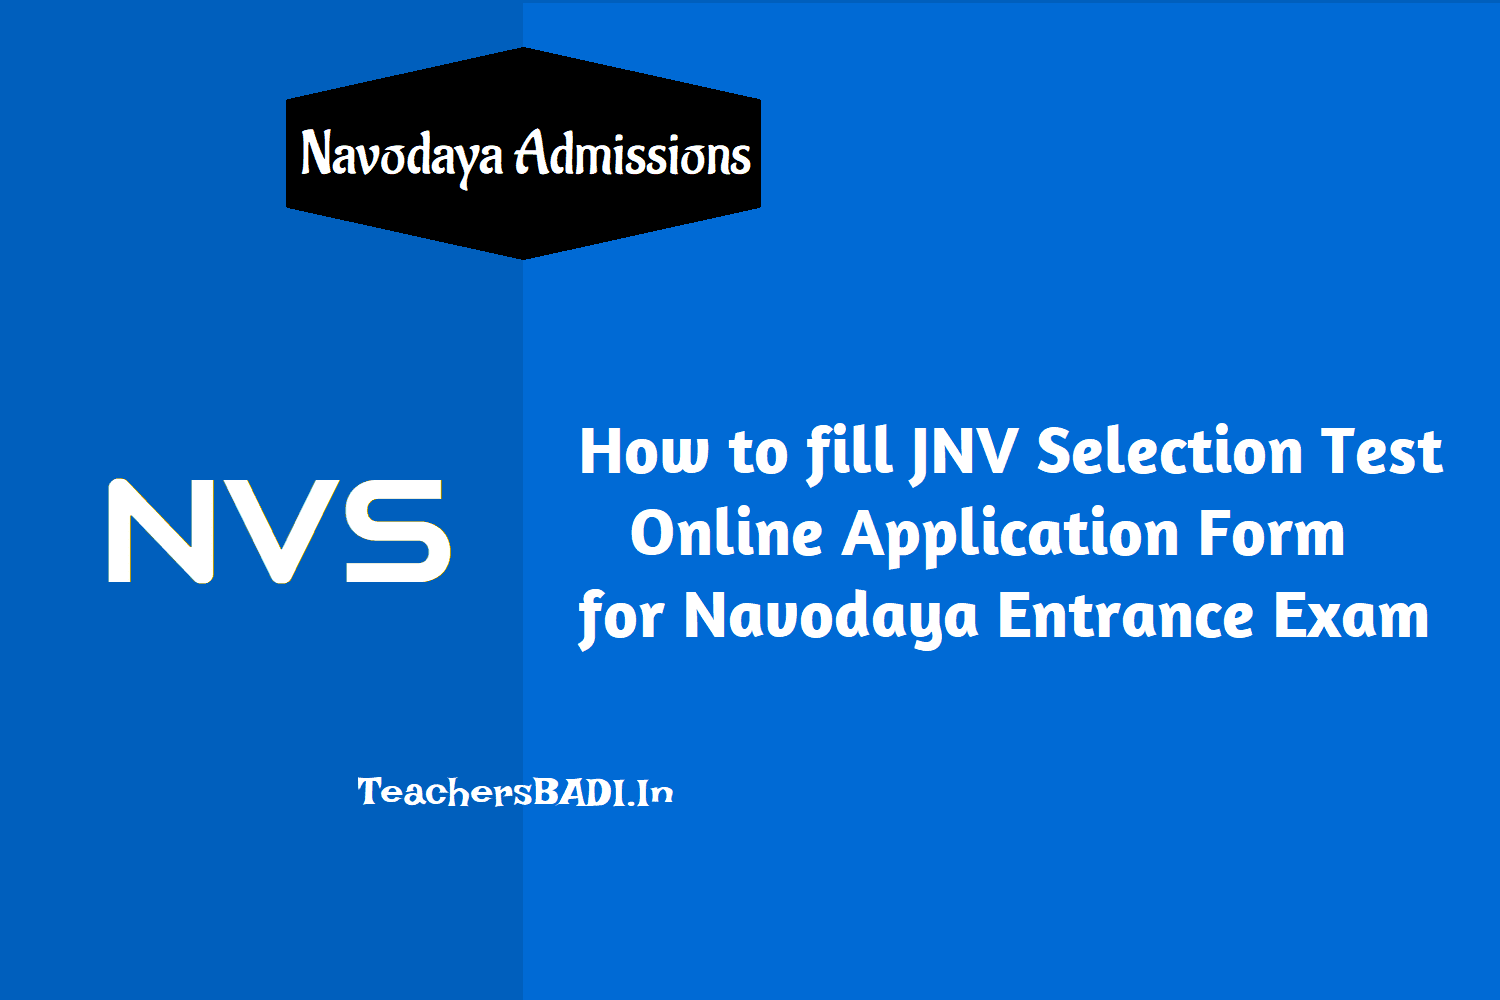 how to fill jnv selection test online application form for navodaya